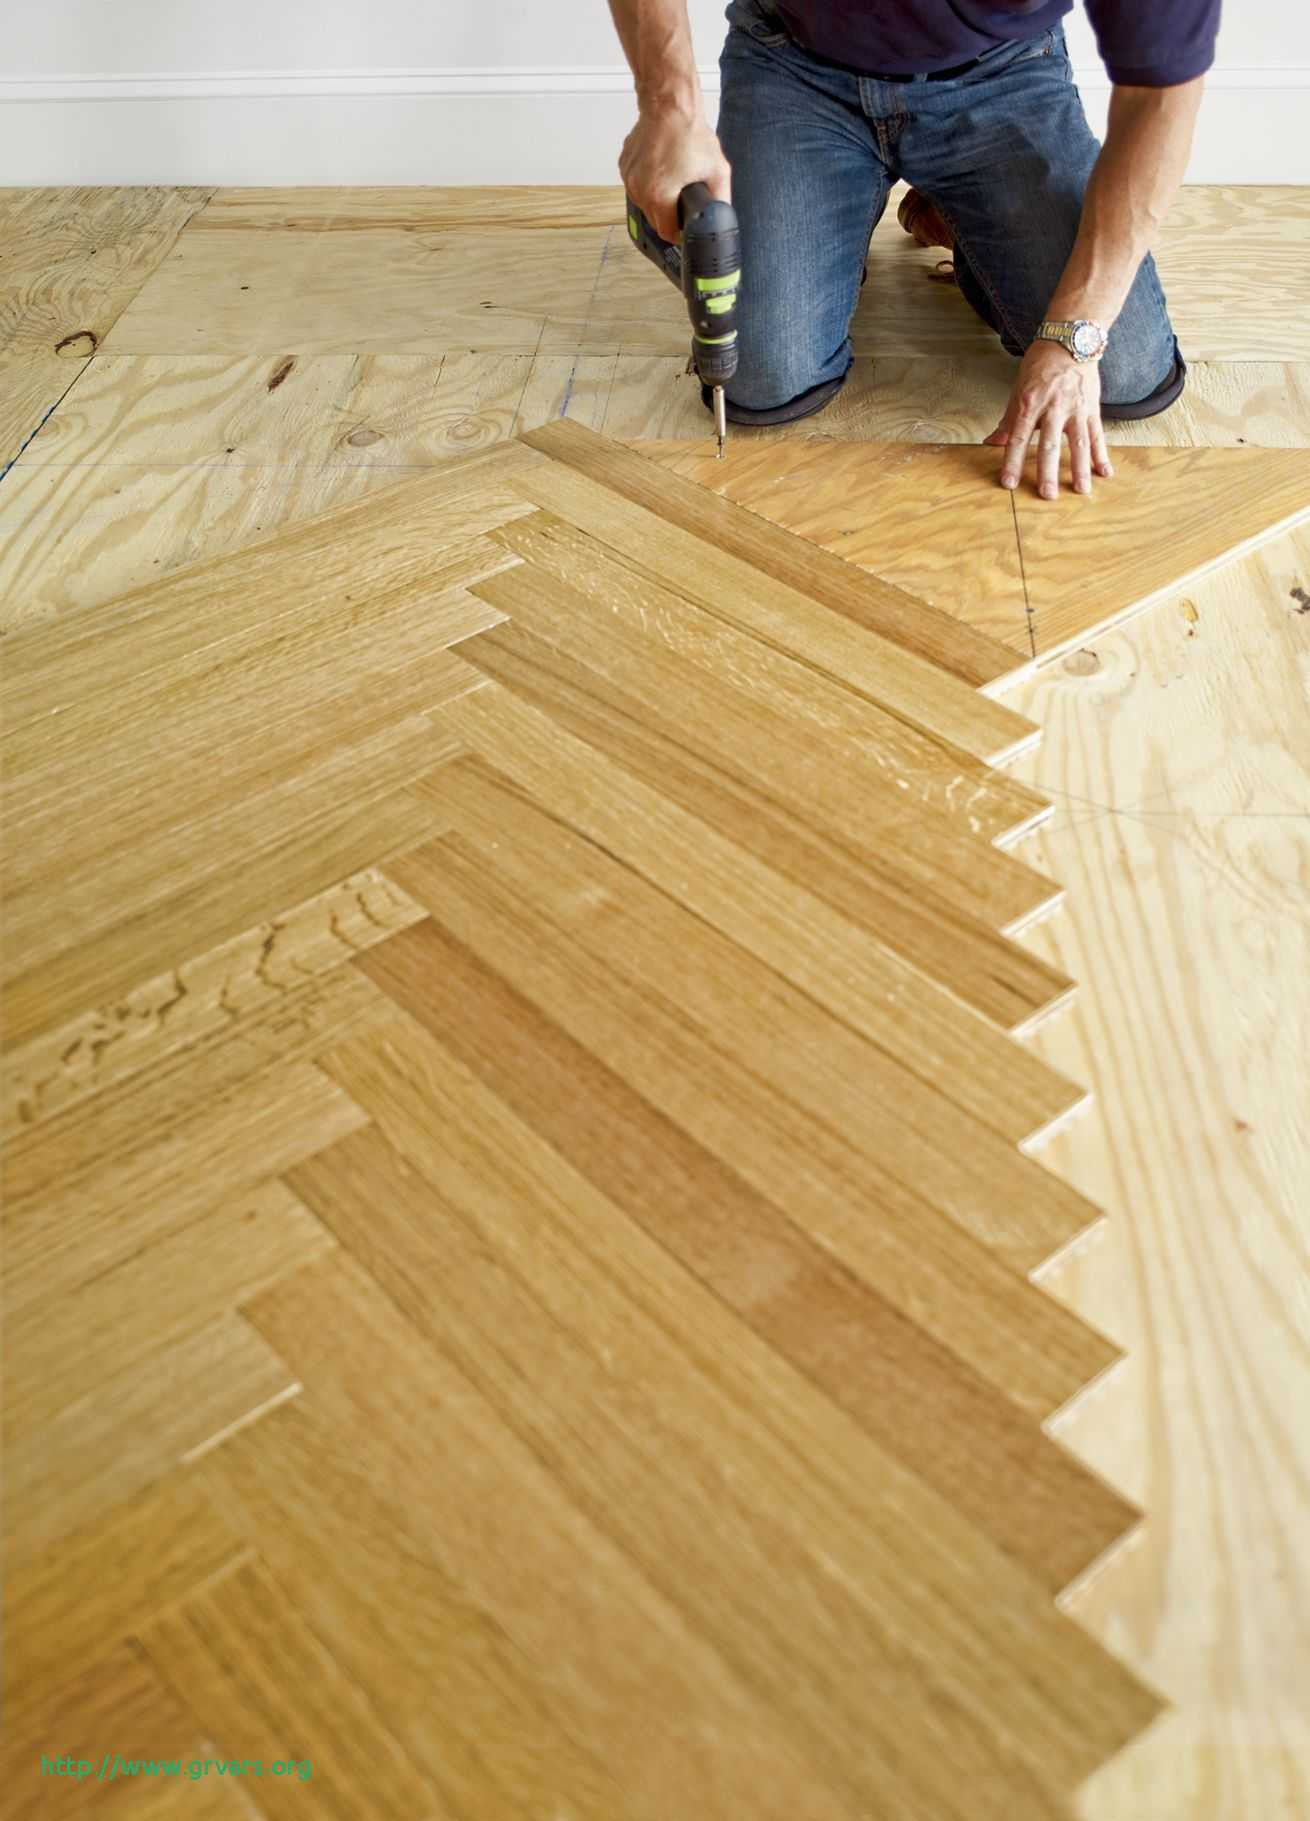 Laying tongue and Groove Hardwood Floors Of 16 Charmant Installing tongue and Groove Porch Flooring Ideas Blog Pertaining to Unscrew the Blank Reverse It and Place It Against the tongue Of the Last Slat Laid How to Install A Herringbone Floor